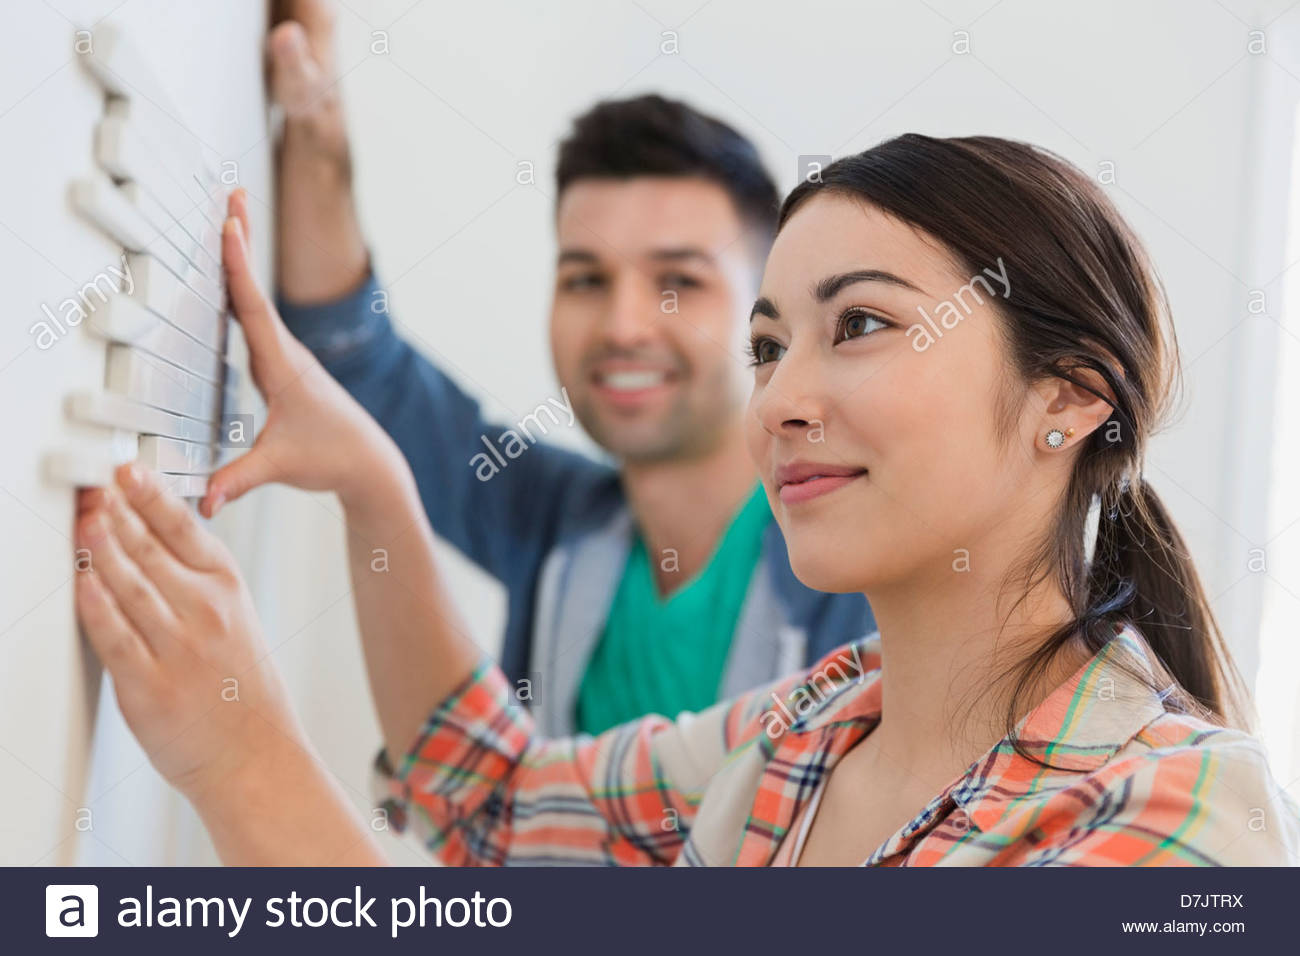 Young couple decorating wall with tiles at home - Stock Image